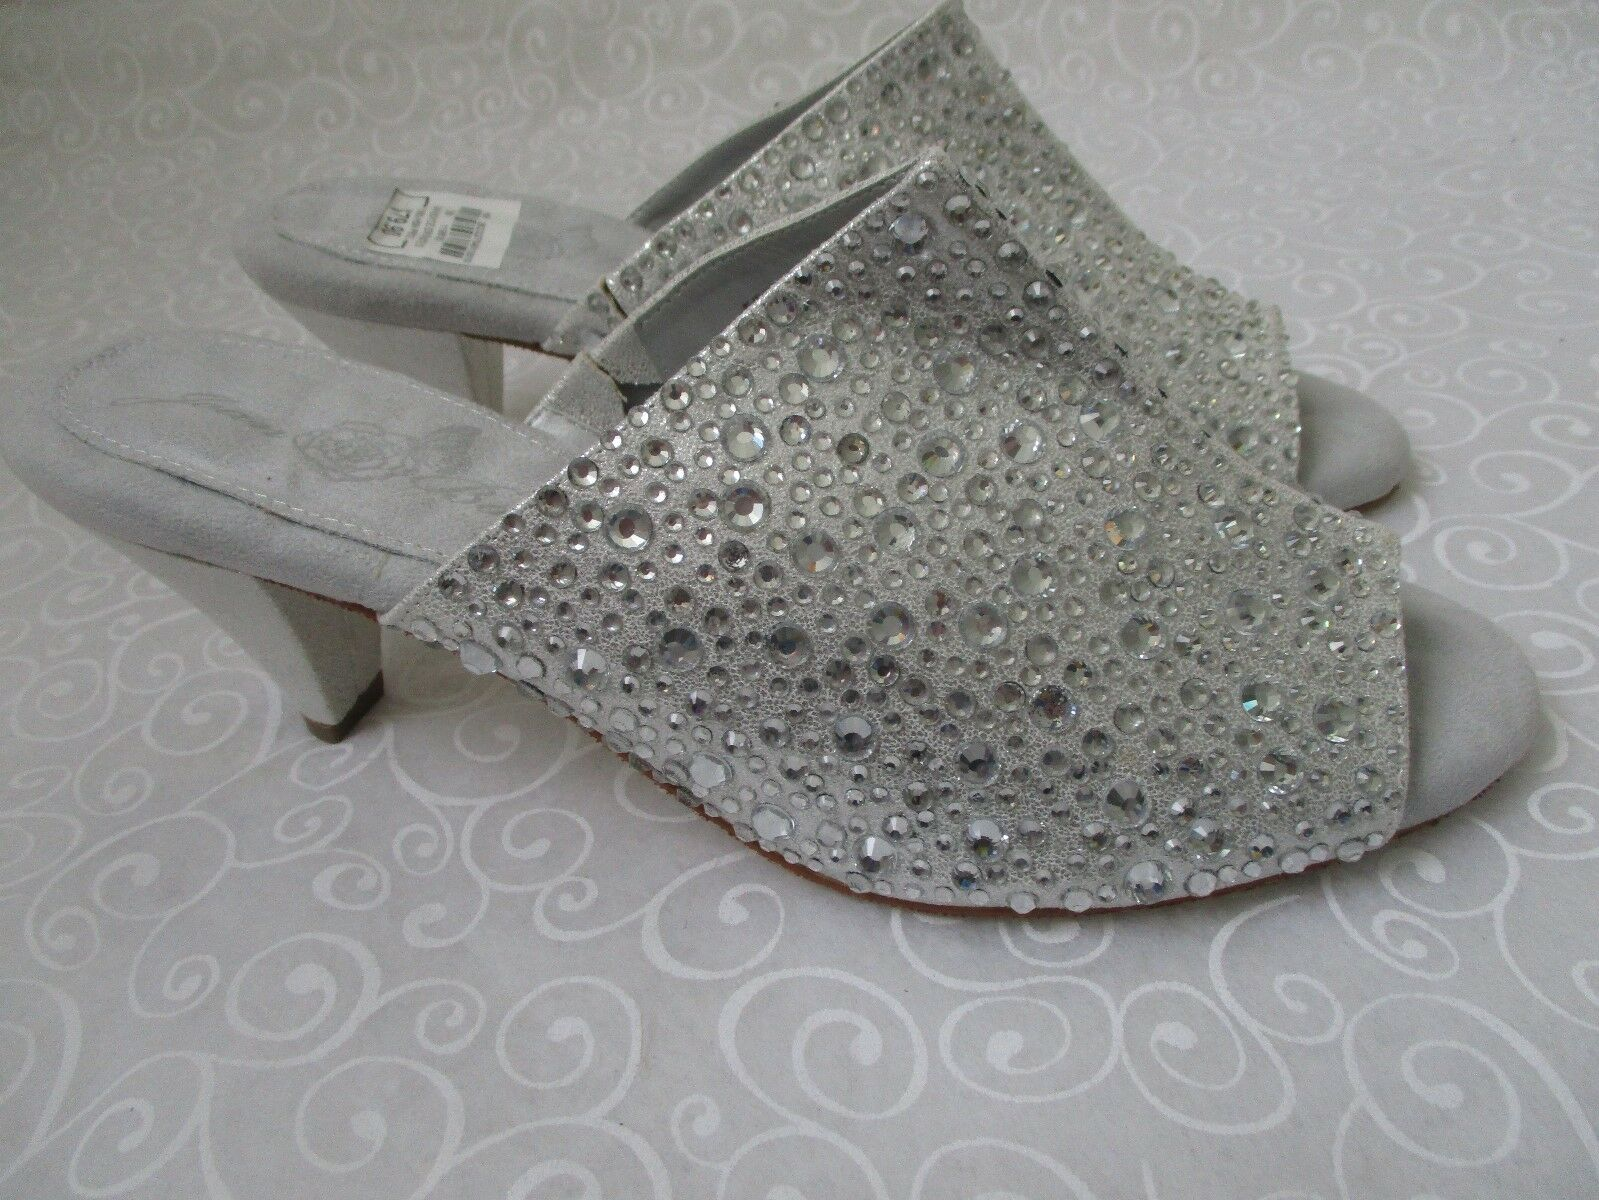 JOAN BOYCE ENCRUSTE SILVER RHINESTONE OPEN TOE SHOES SIZE 10 M - NEW